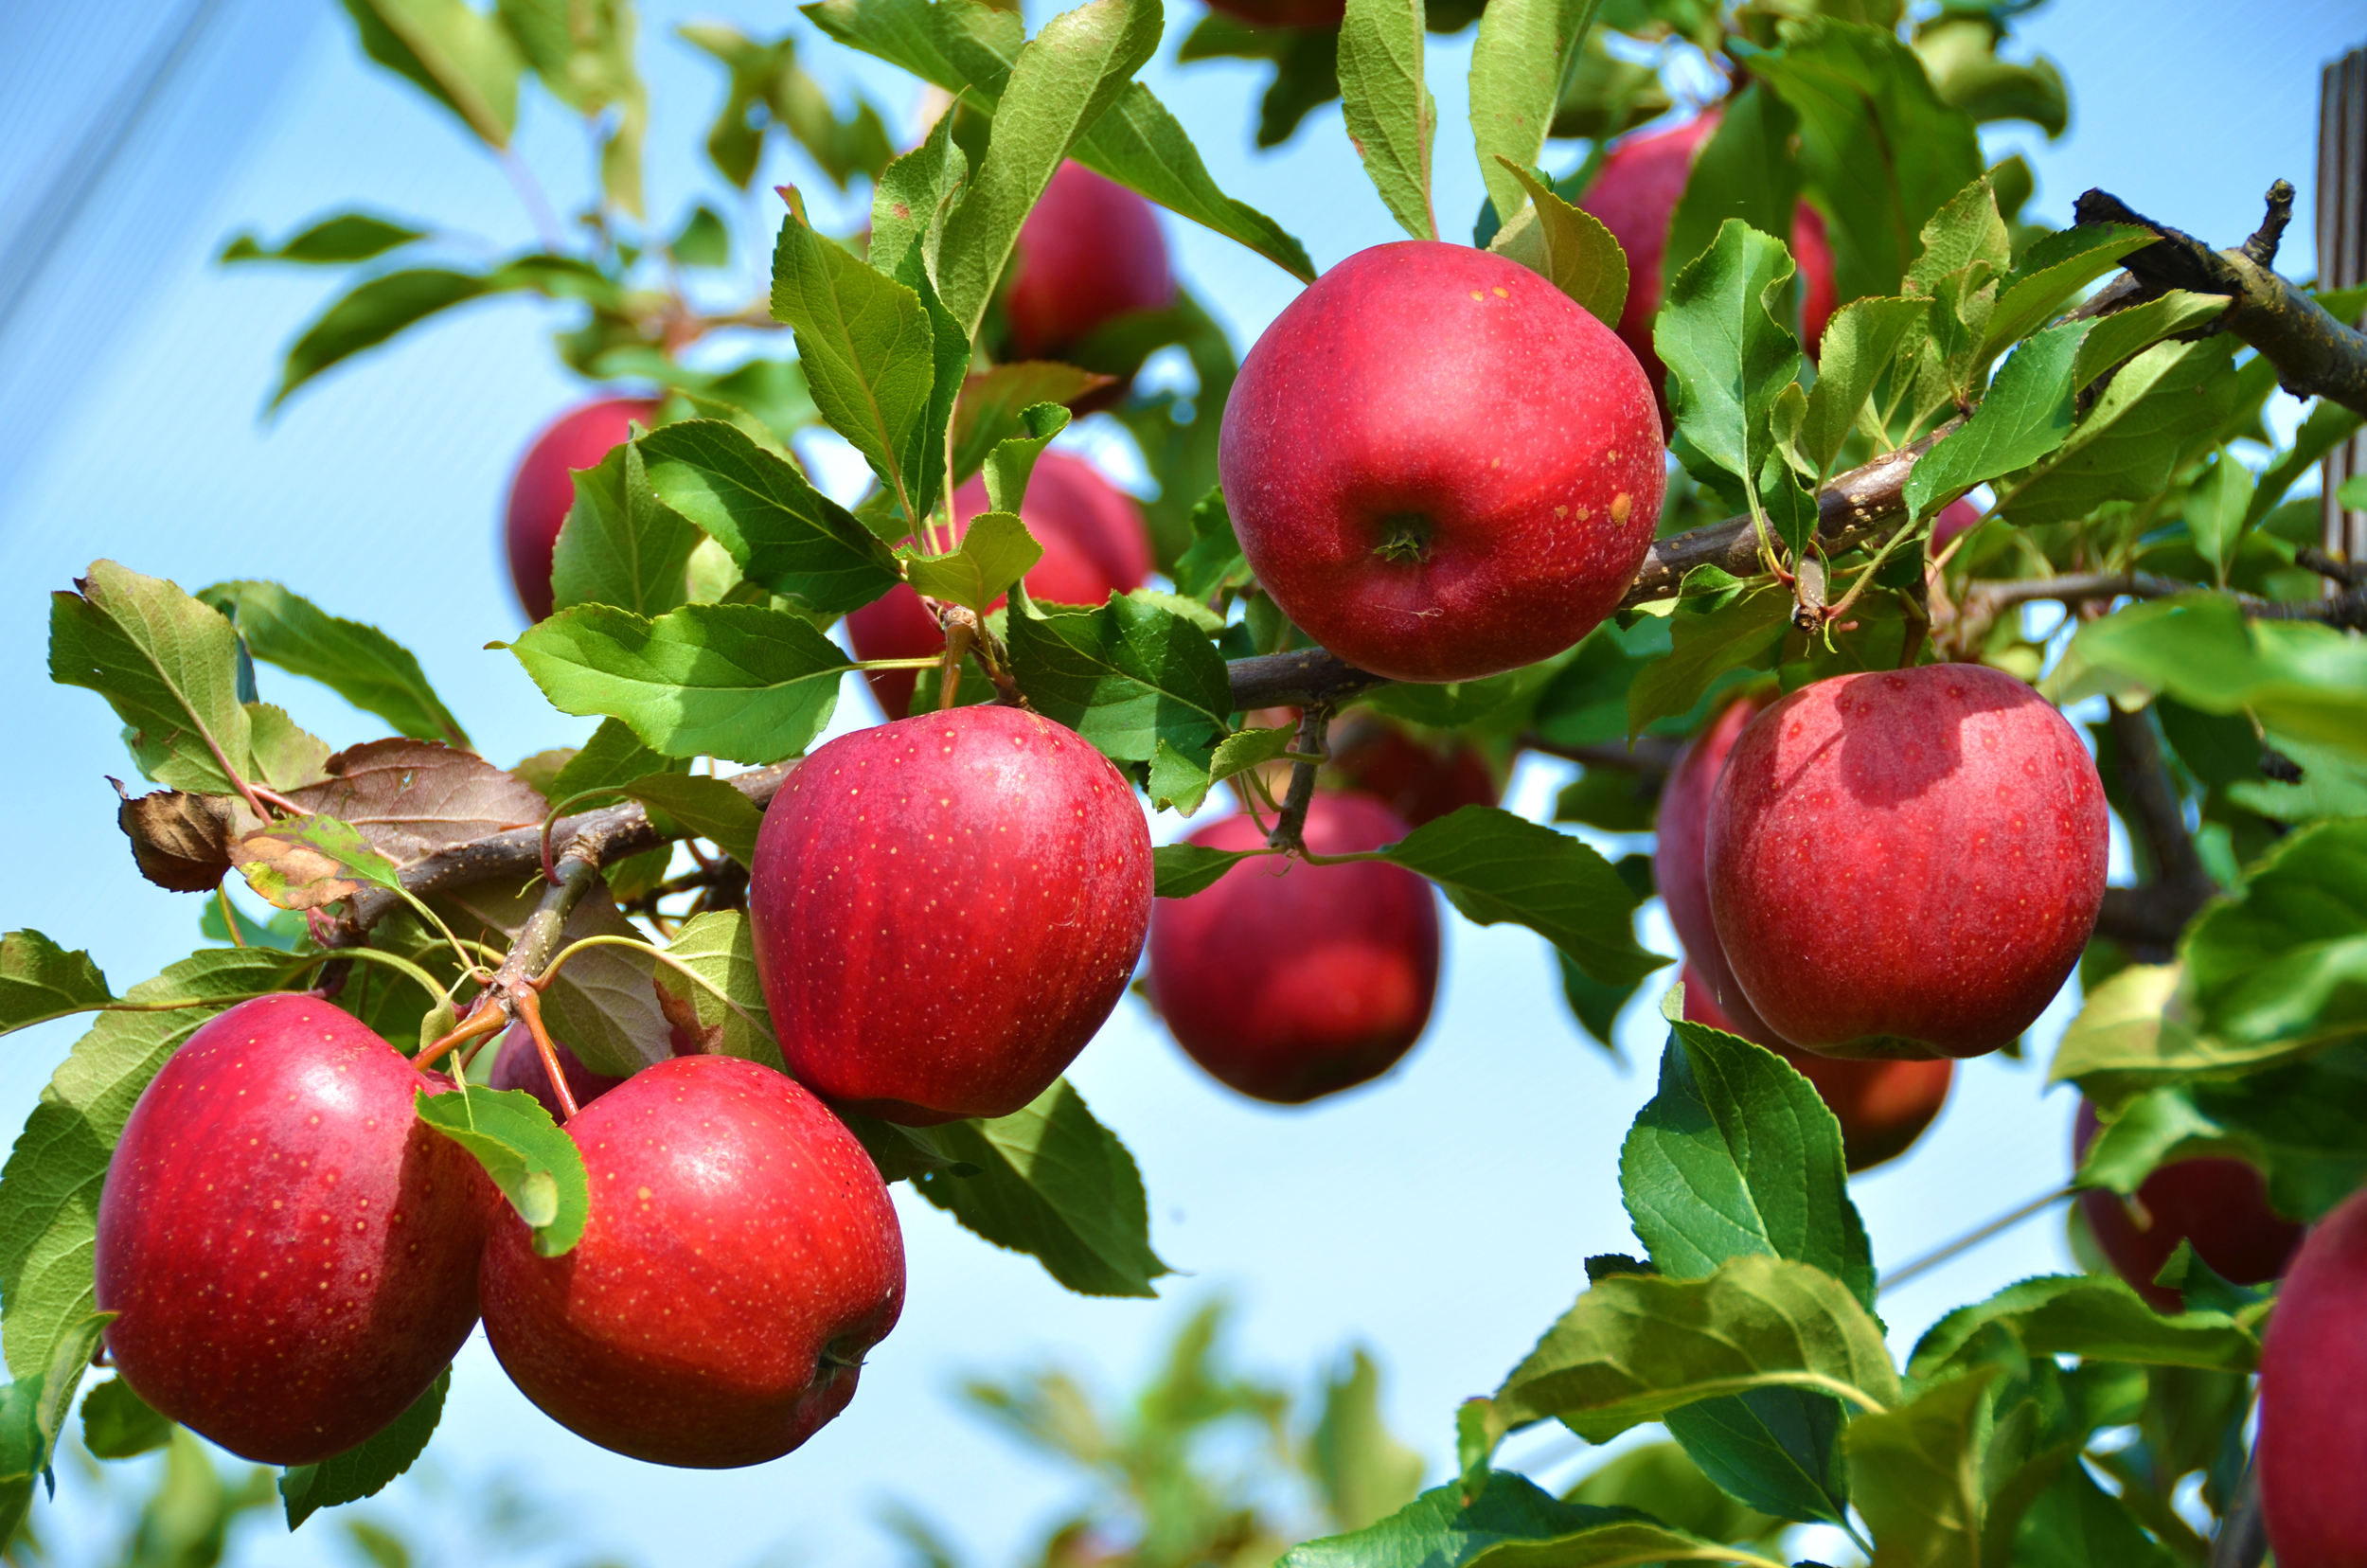 https://www.isons.com/wp-content/uploads/2016/10/apples-on-branch.jpg